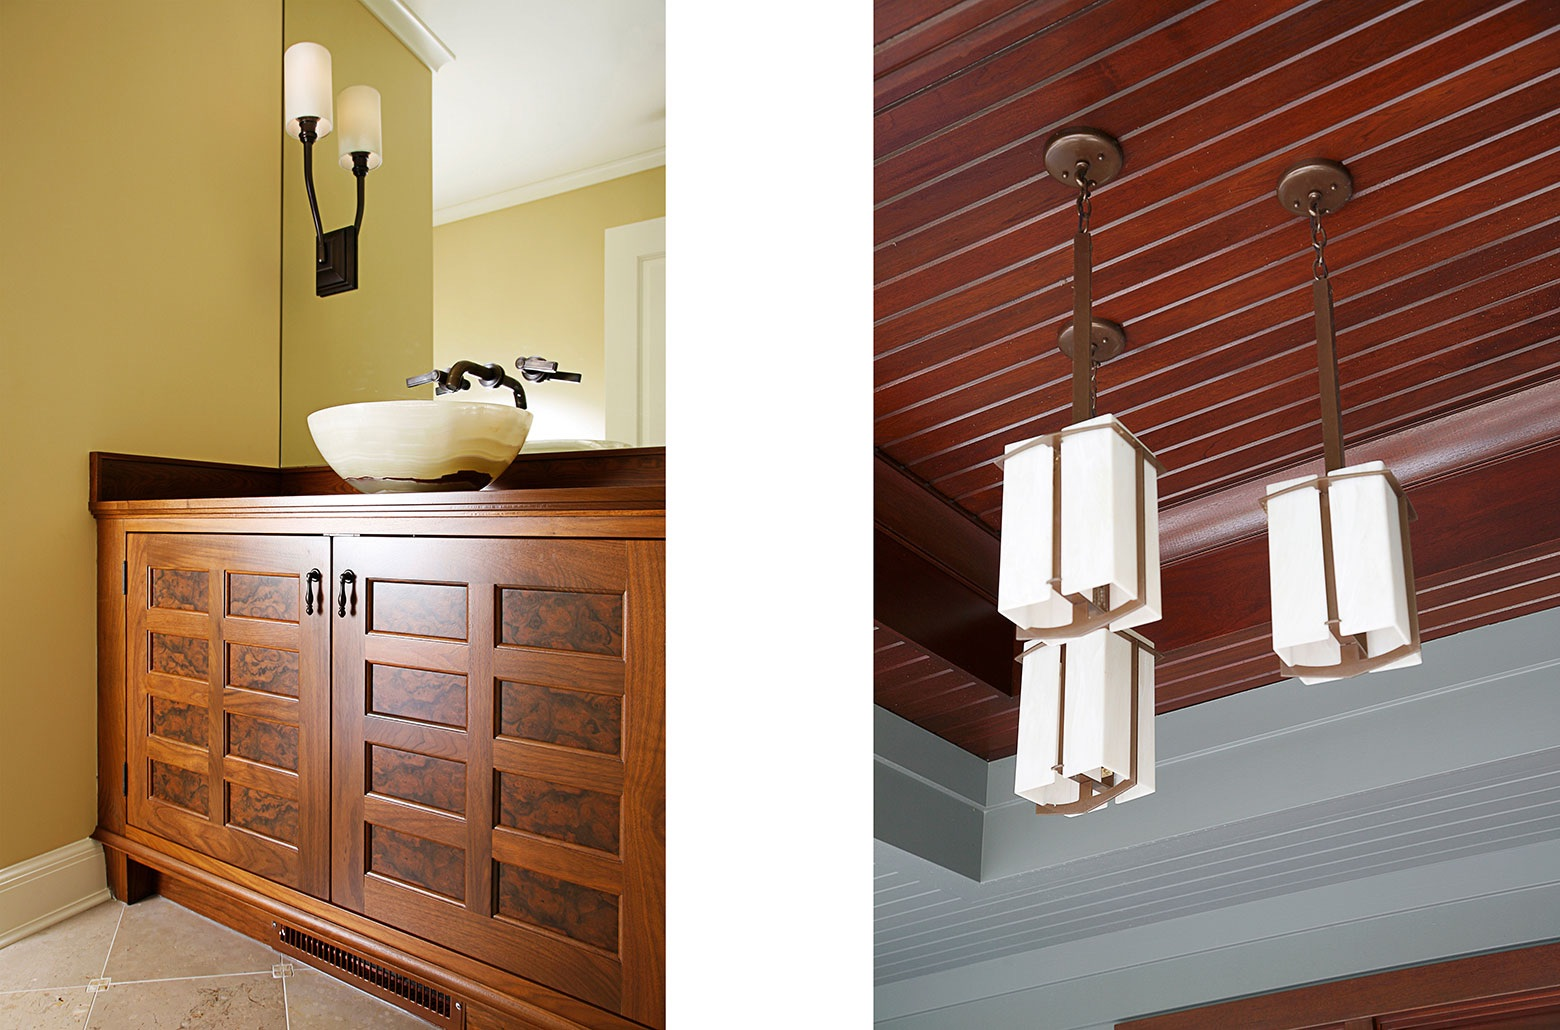 wood bathroom cabinets and ceiling